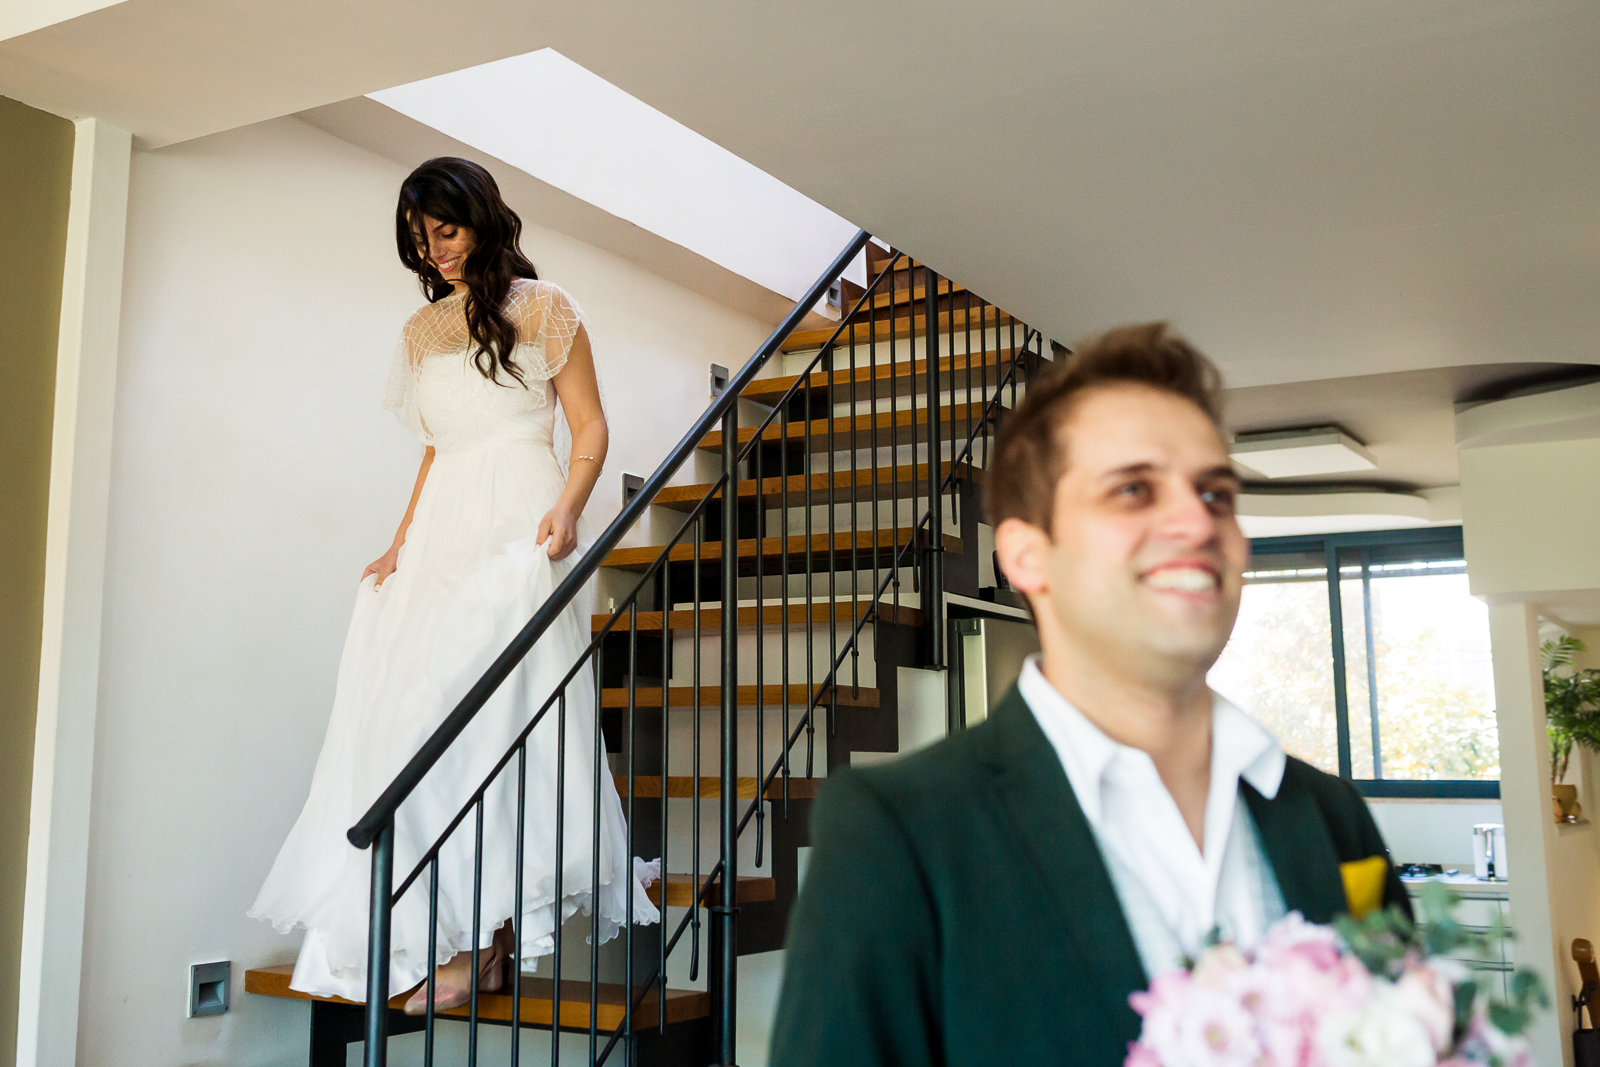 a bride coming down the stairs while her groom smiling with excitement